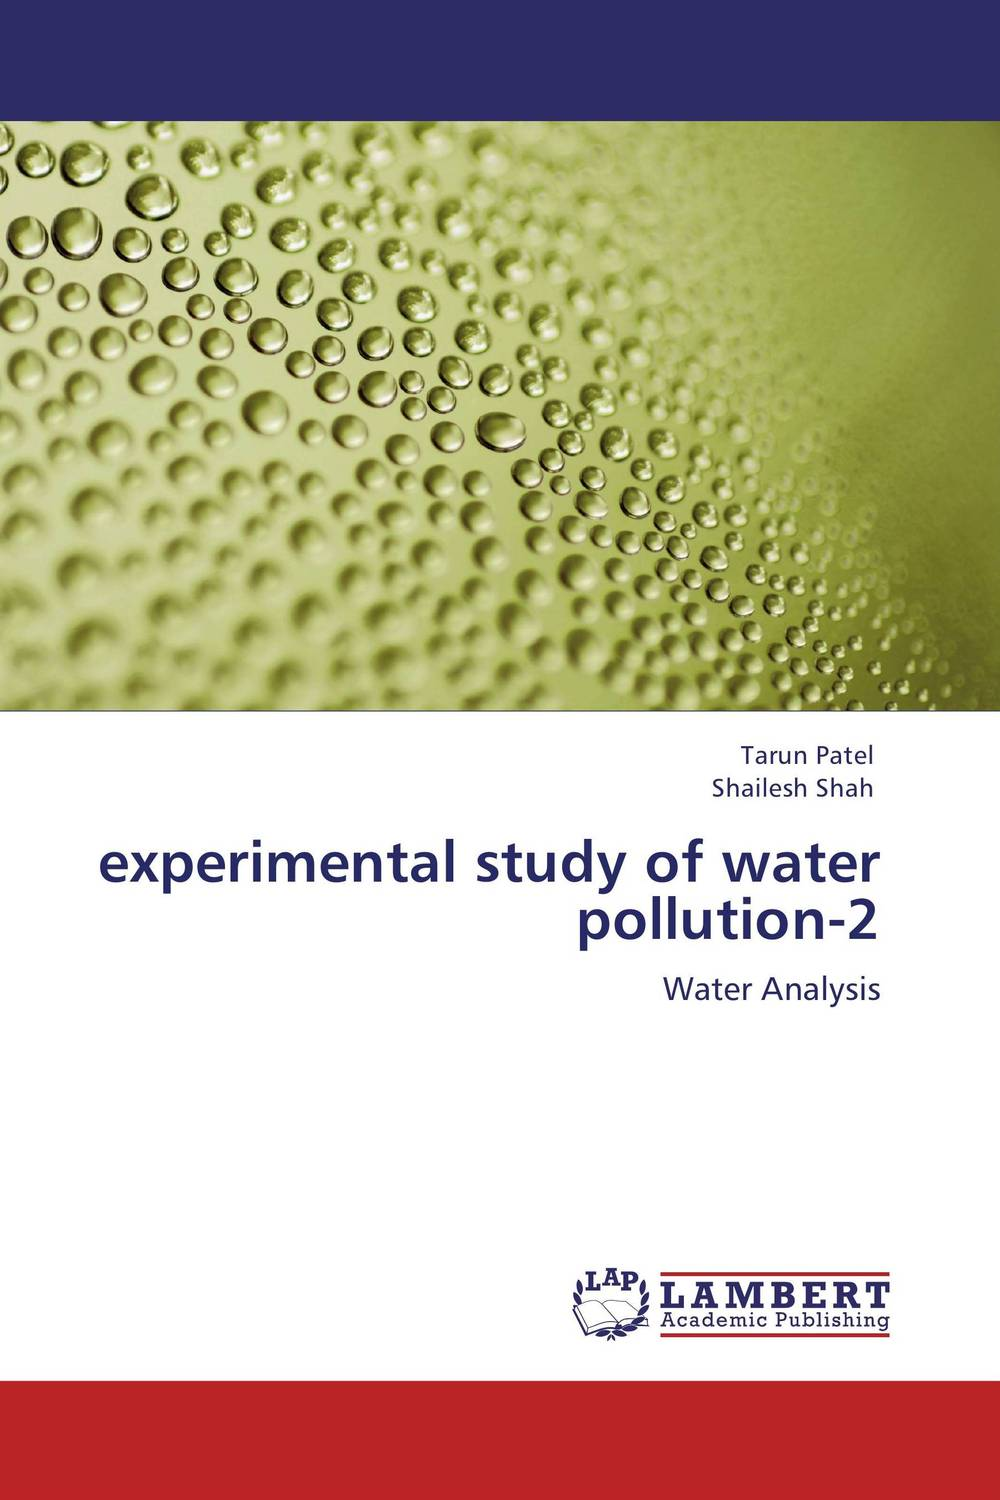 experimental study of water pollution-2 bride of the water god v 3